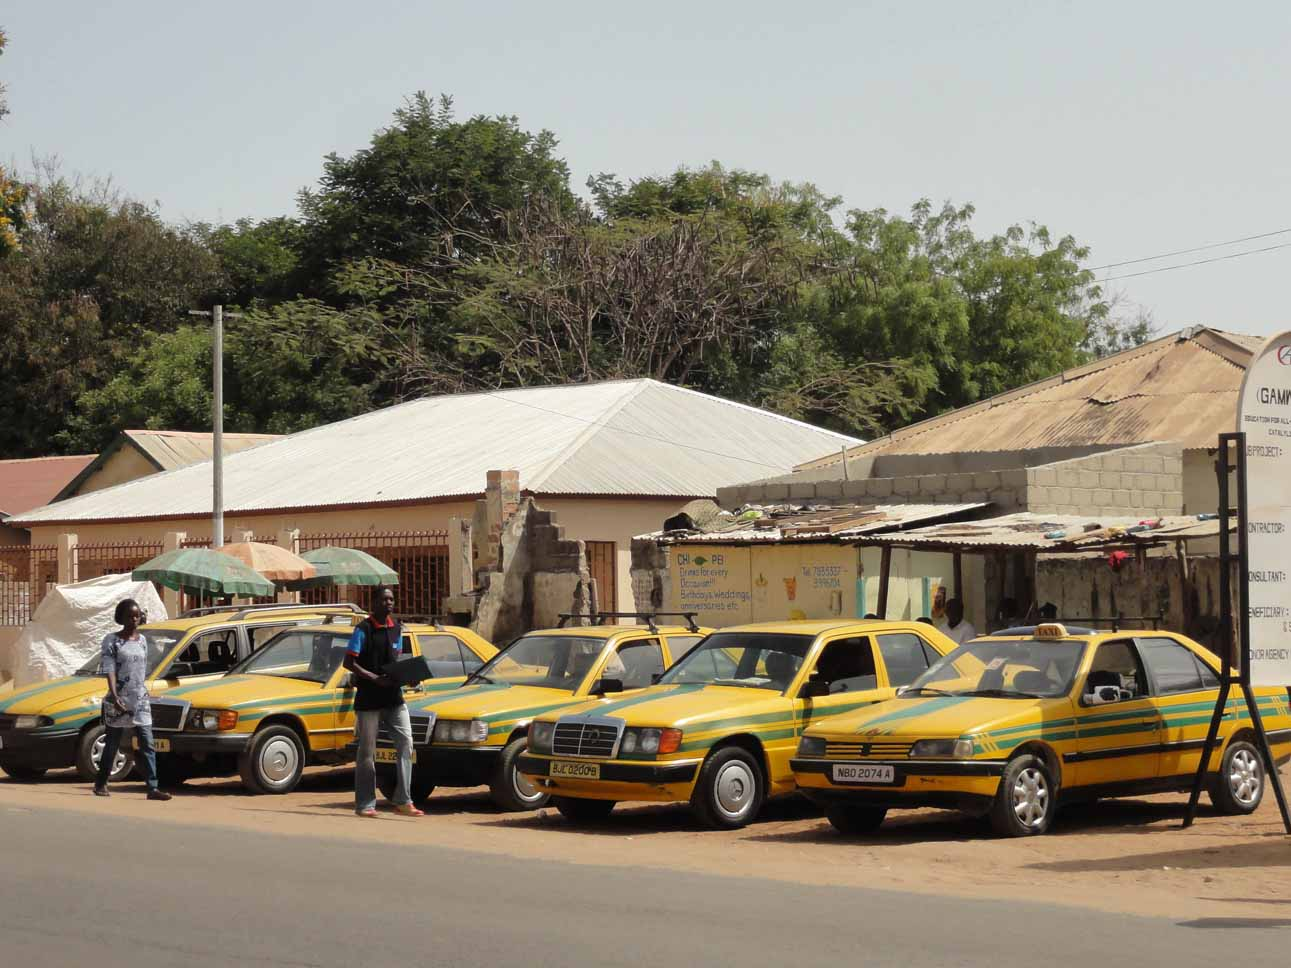 Gambian taxis with go faster stripes